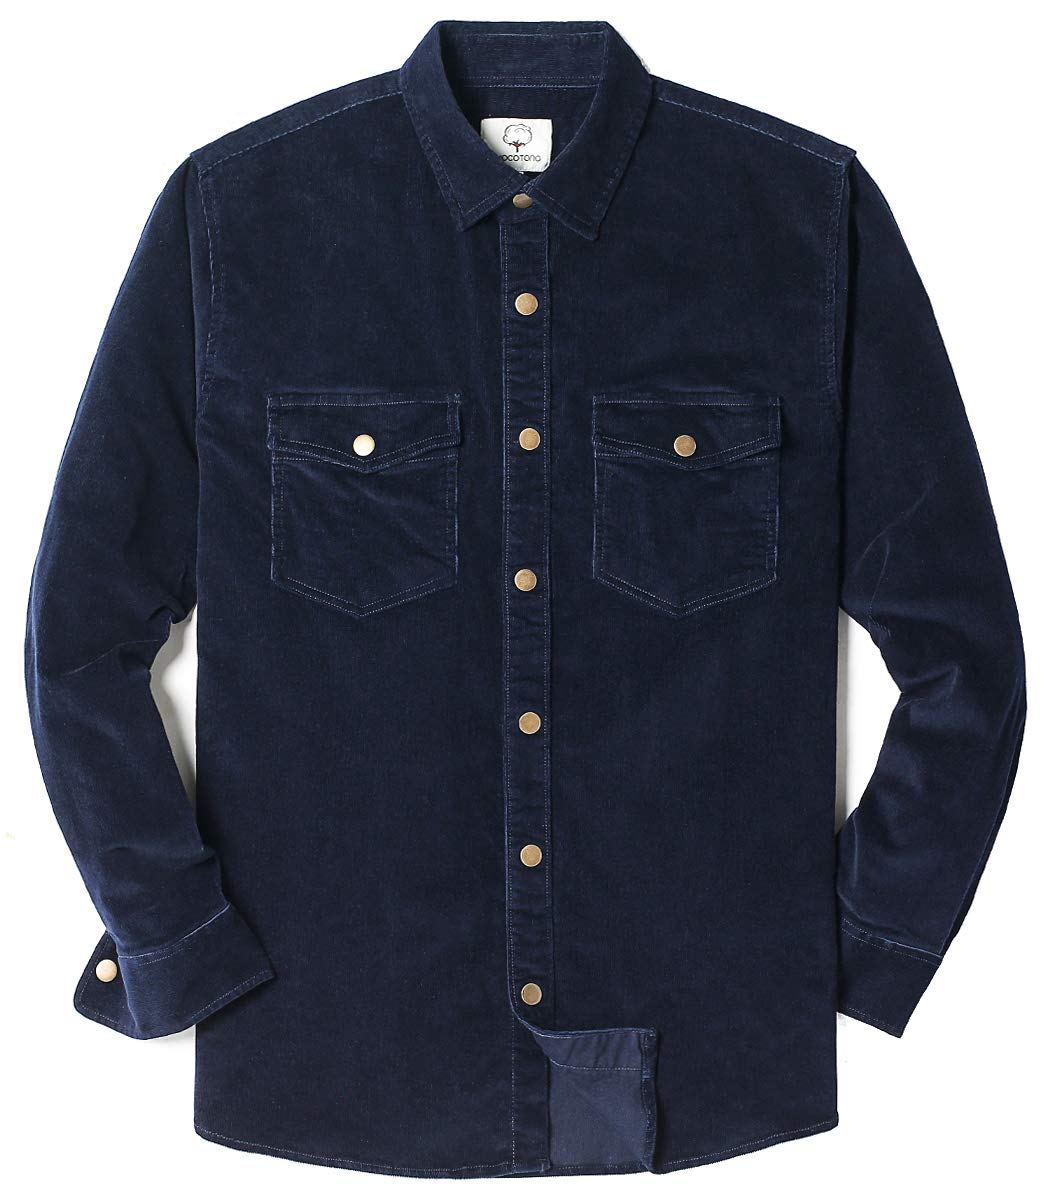 MOCOTONO Mens Long Sleeve Thick Corduroy Shirt Casual Button Down Jackets Navy Blue Large